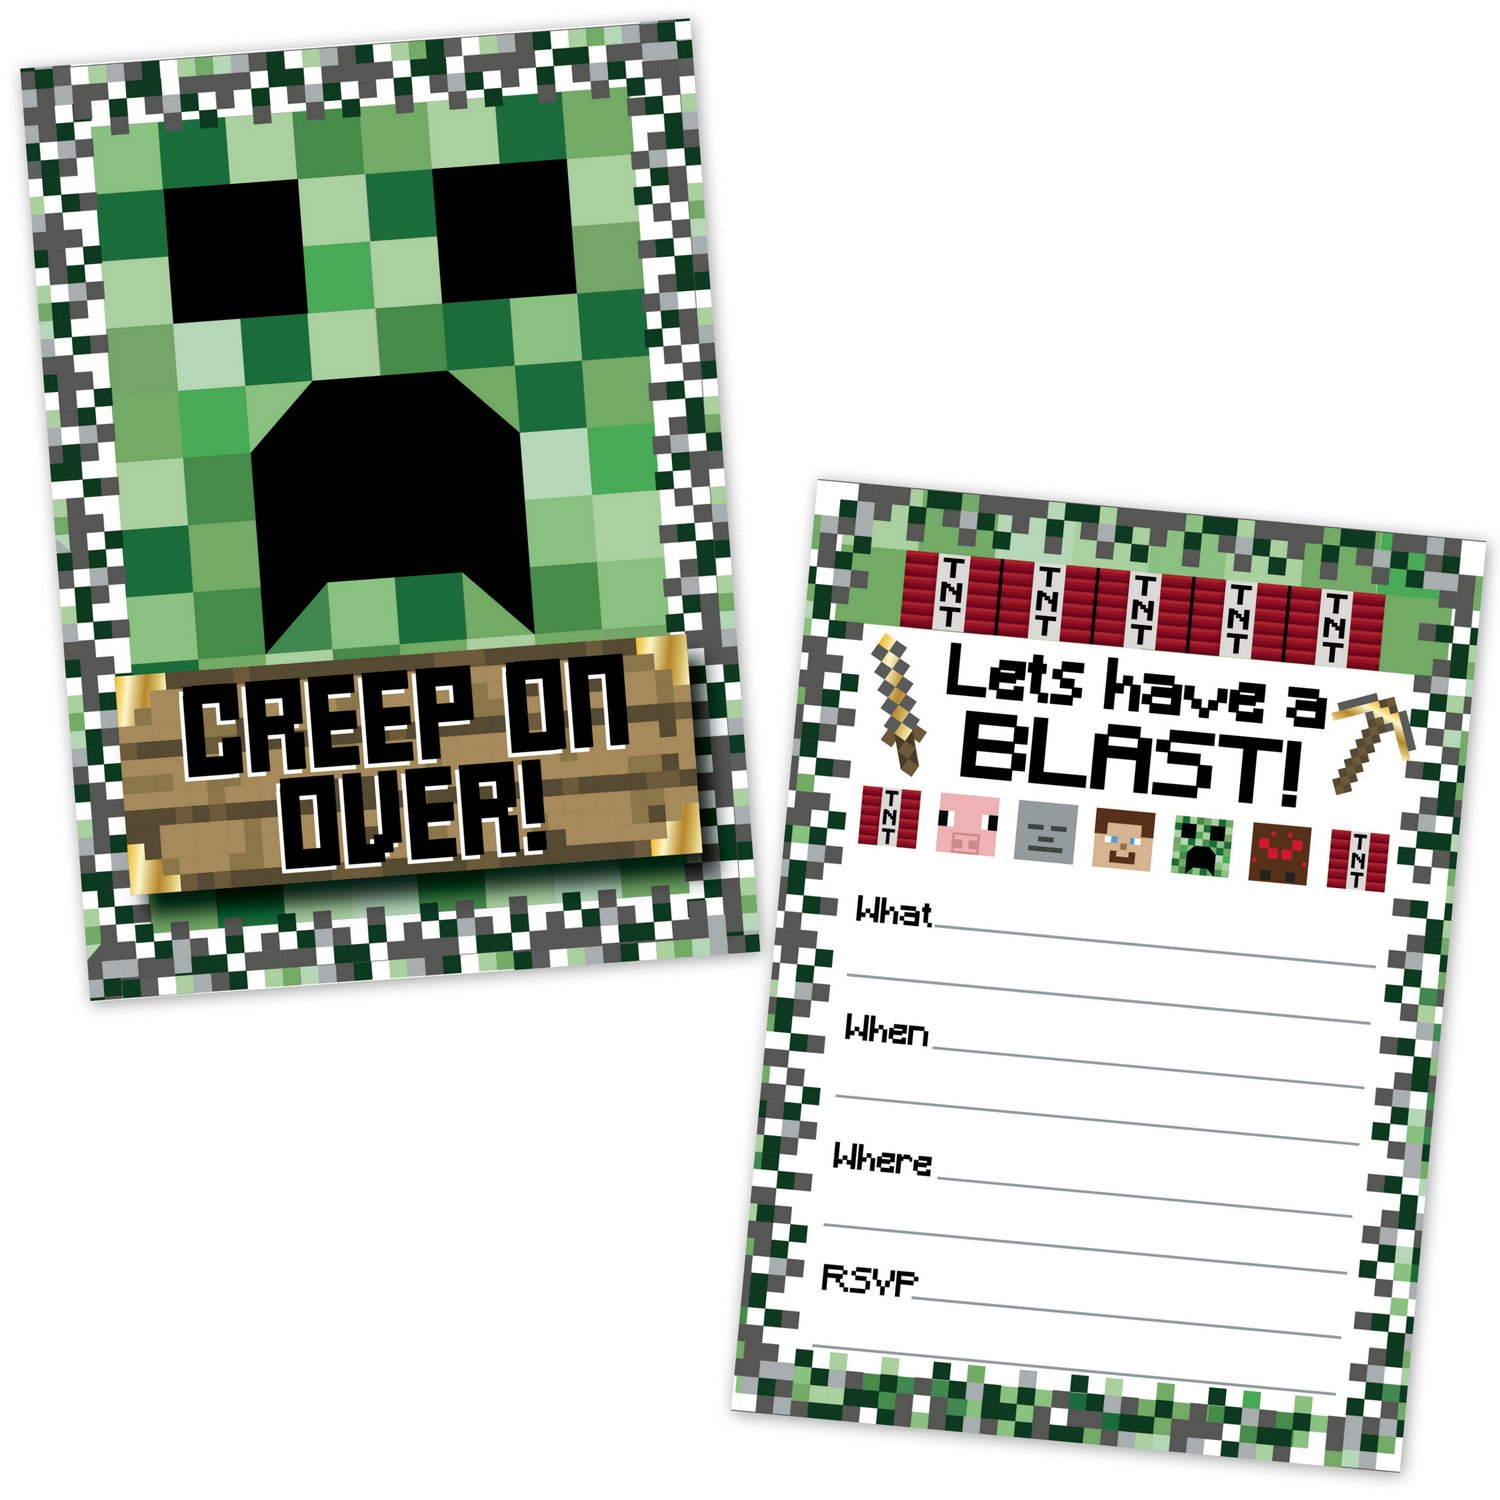 Pixel Mining Birthday Party Invitations for Kids (20 Count with Envelopes) - Pixel Party Invites for Boys and Girls - Pixel Mining Party Supplies - Kids Birthday Invitations by Old Blue Door Invites (Image #1)